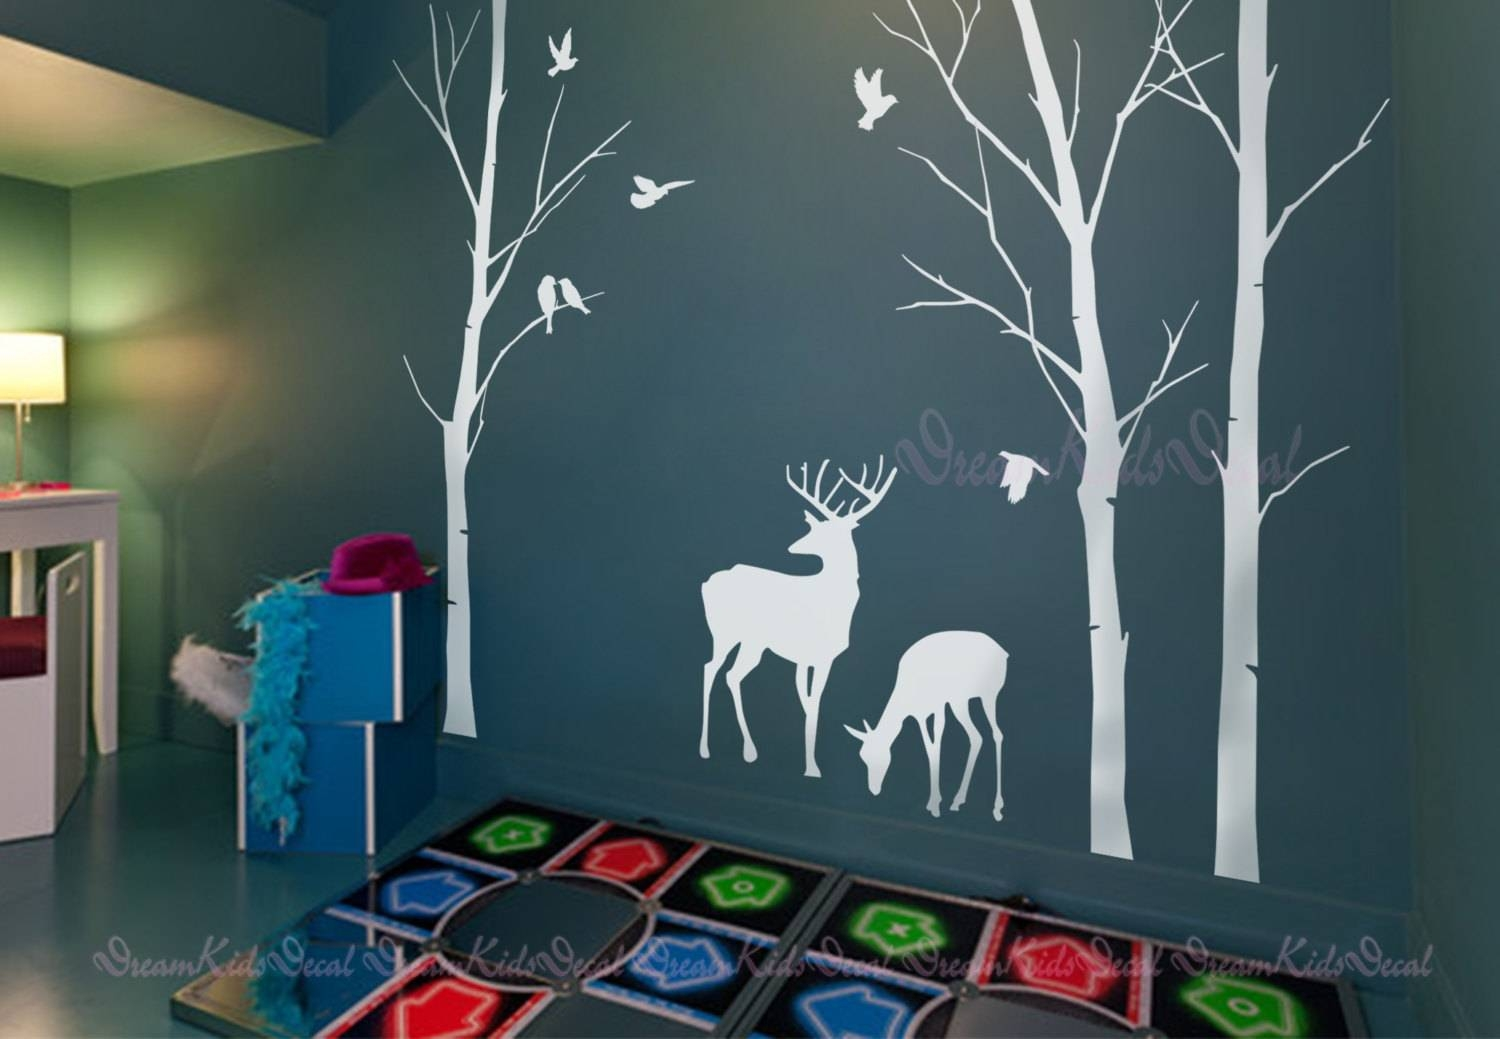 Family Tree Wall Art Bed Bath And Beyond | Wallartideas For Latest Bed Bath And Beyond 3D Wall Art (View 12 of 20)